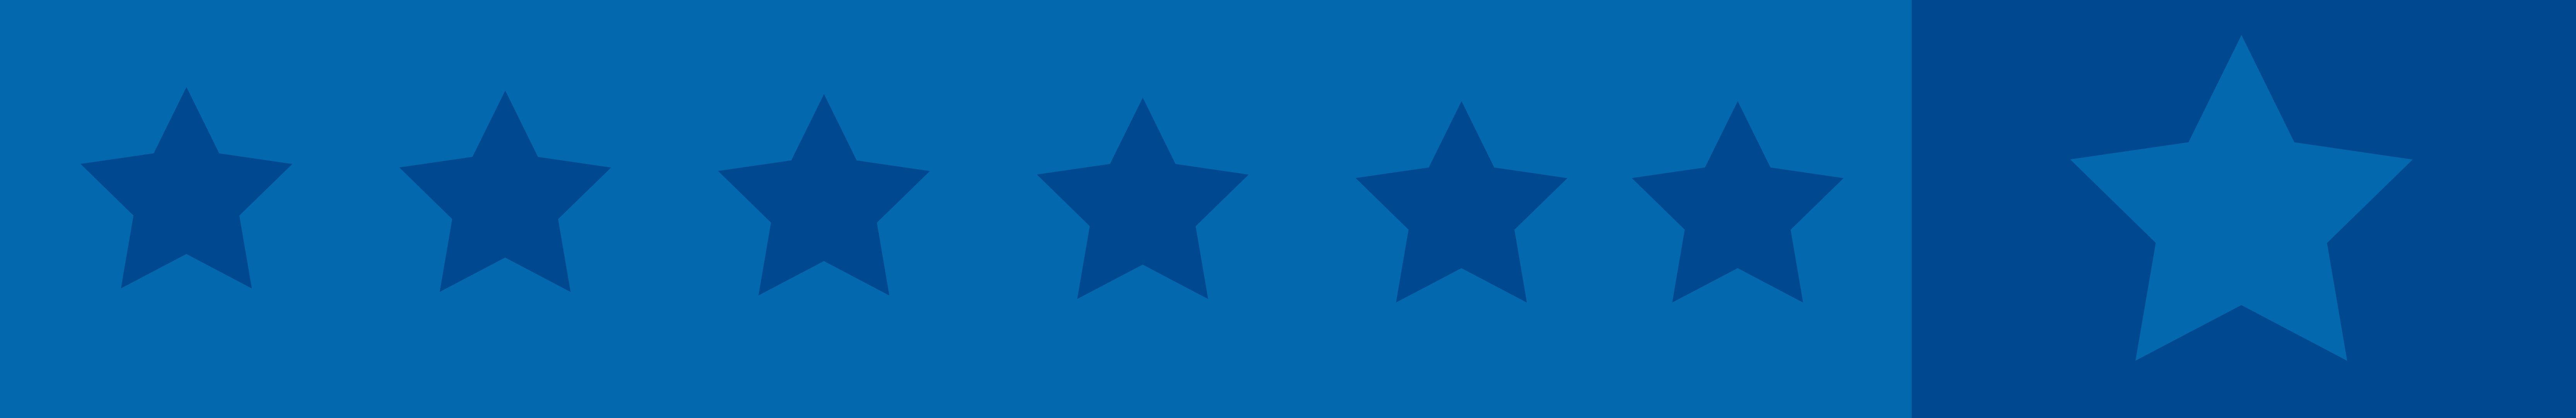 divider banner, blue with light blue stars across